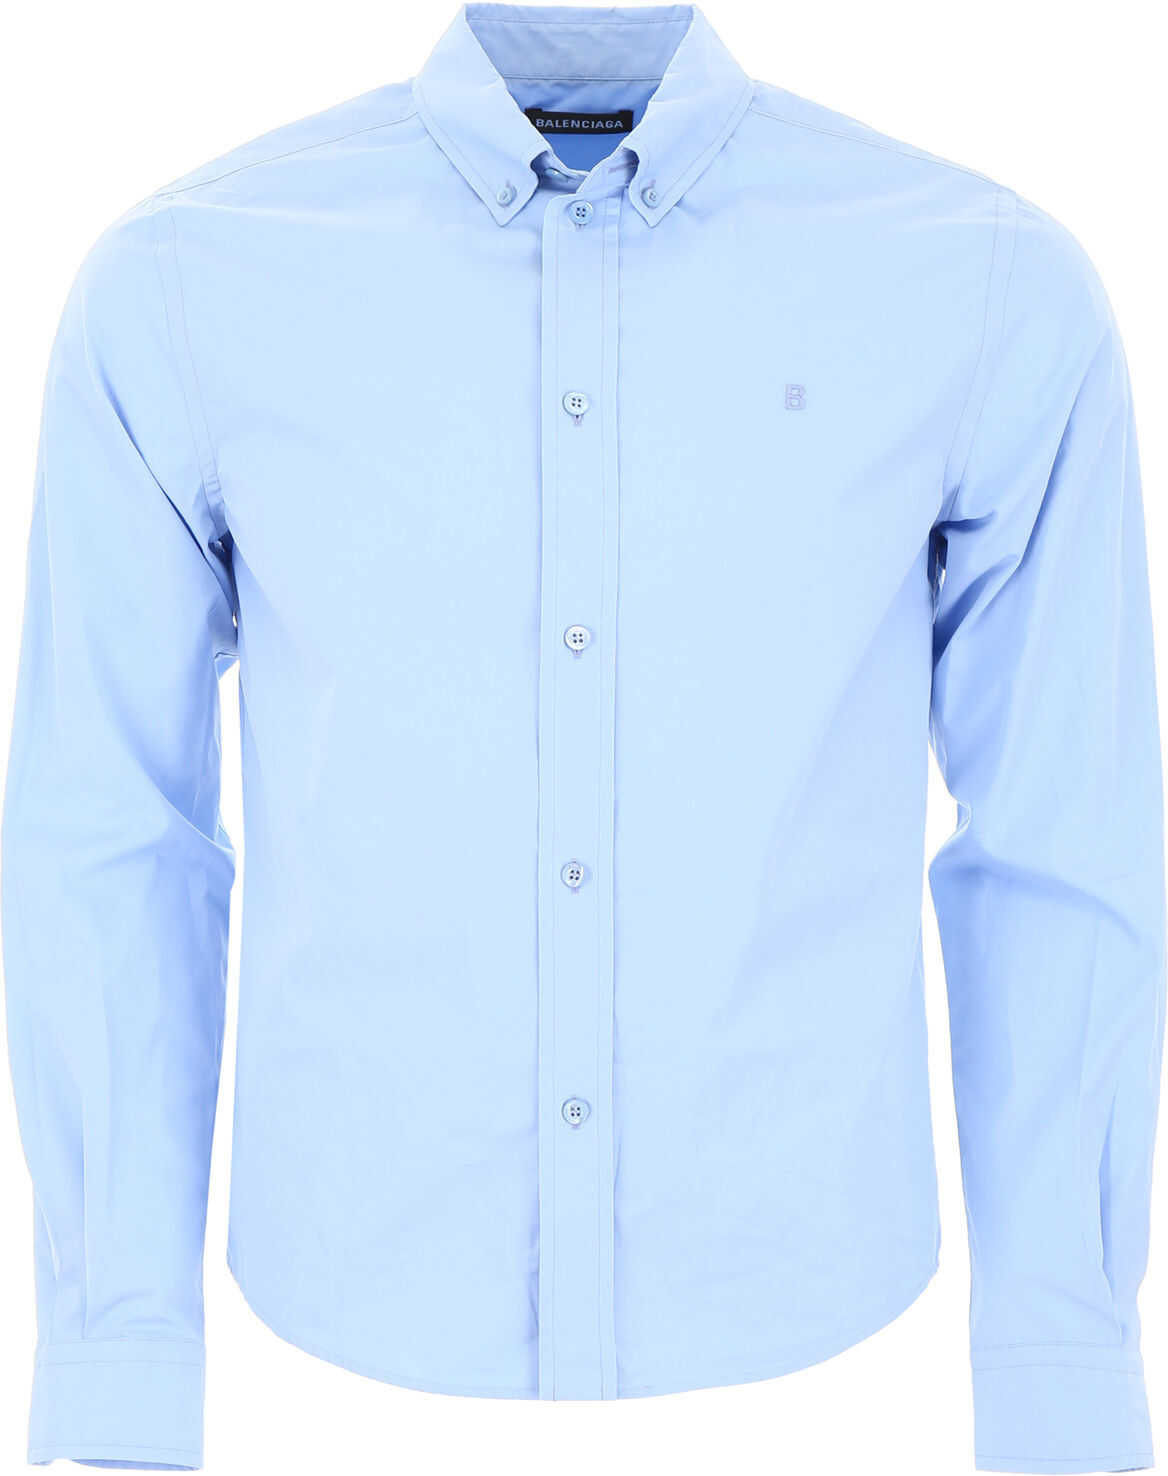 Balenciaga Shirt With Embroidered B BABY BLUE